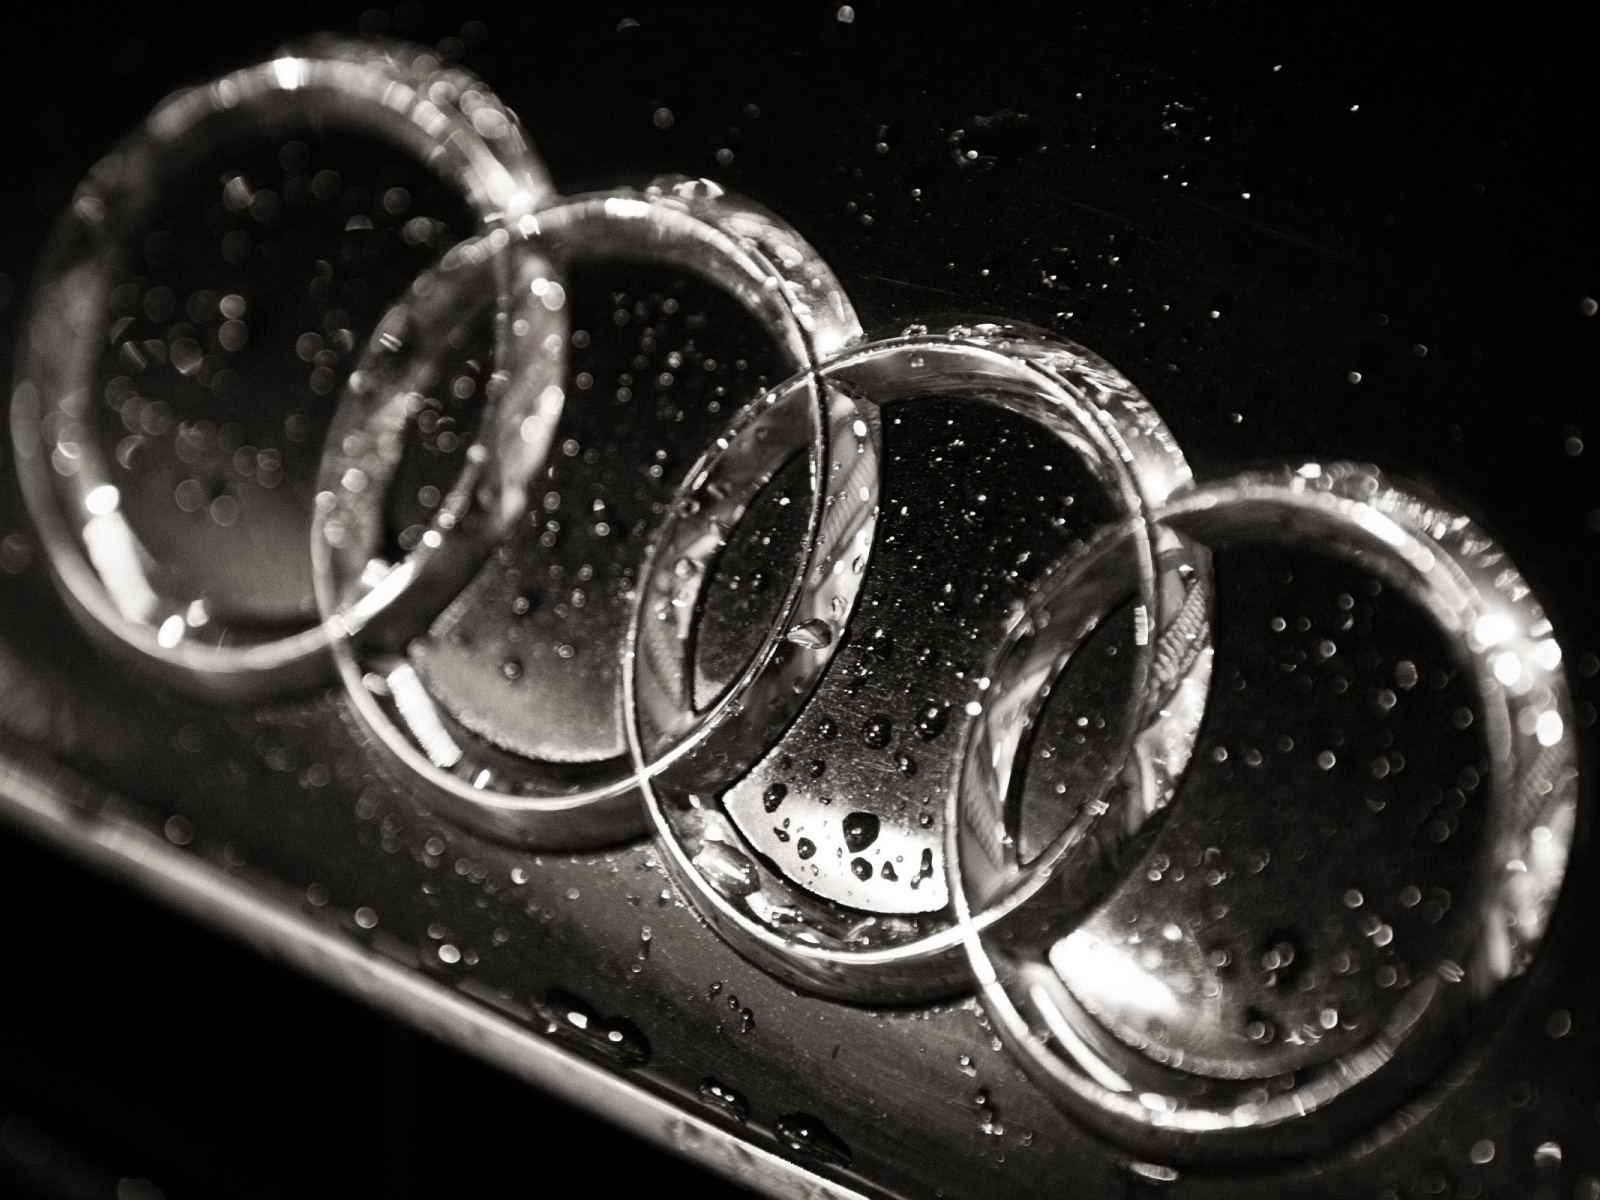 1500x500 Wet Audi logo, cars